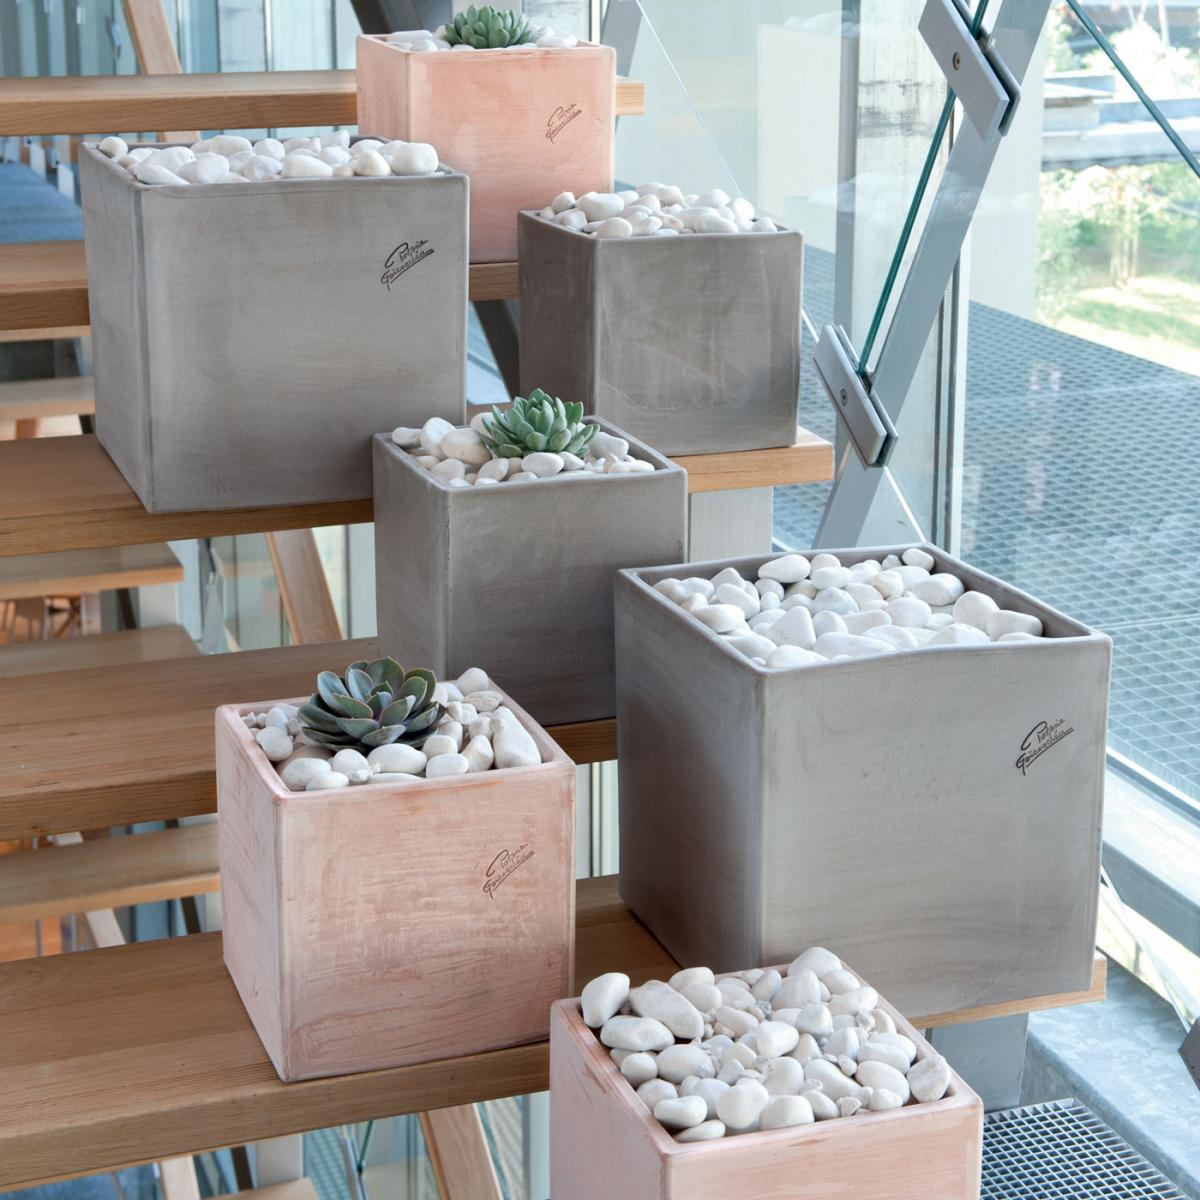 Clifton Nurseries Goicoechea Contemporary Square Pot In Grey And Natural